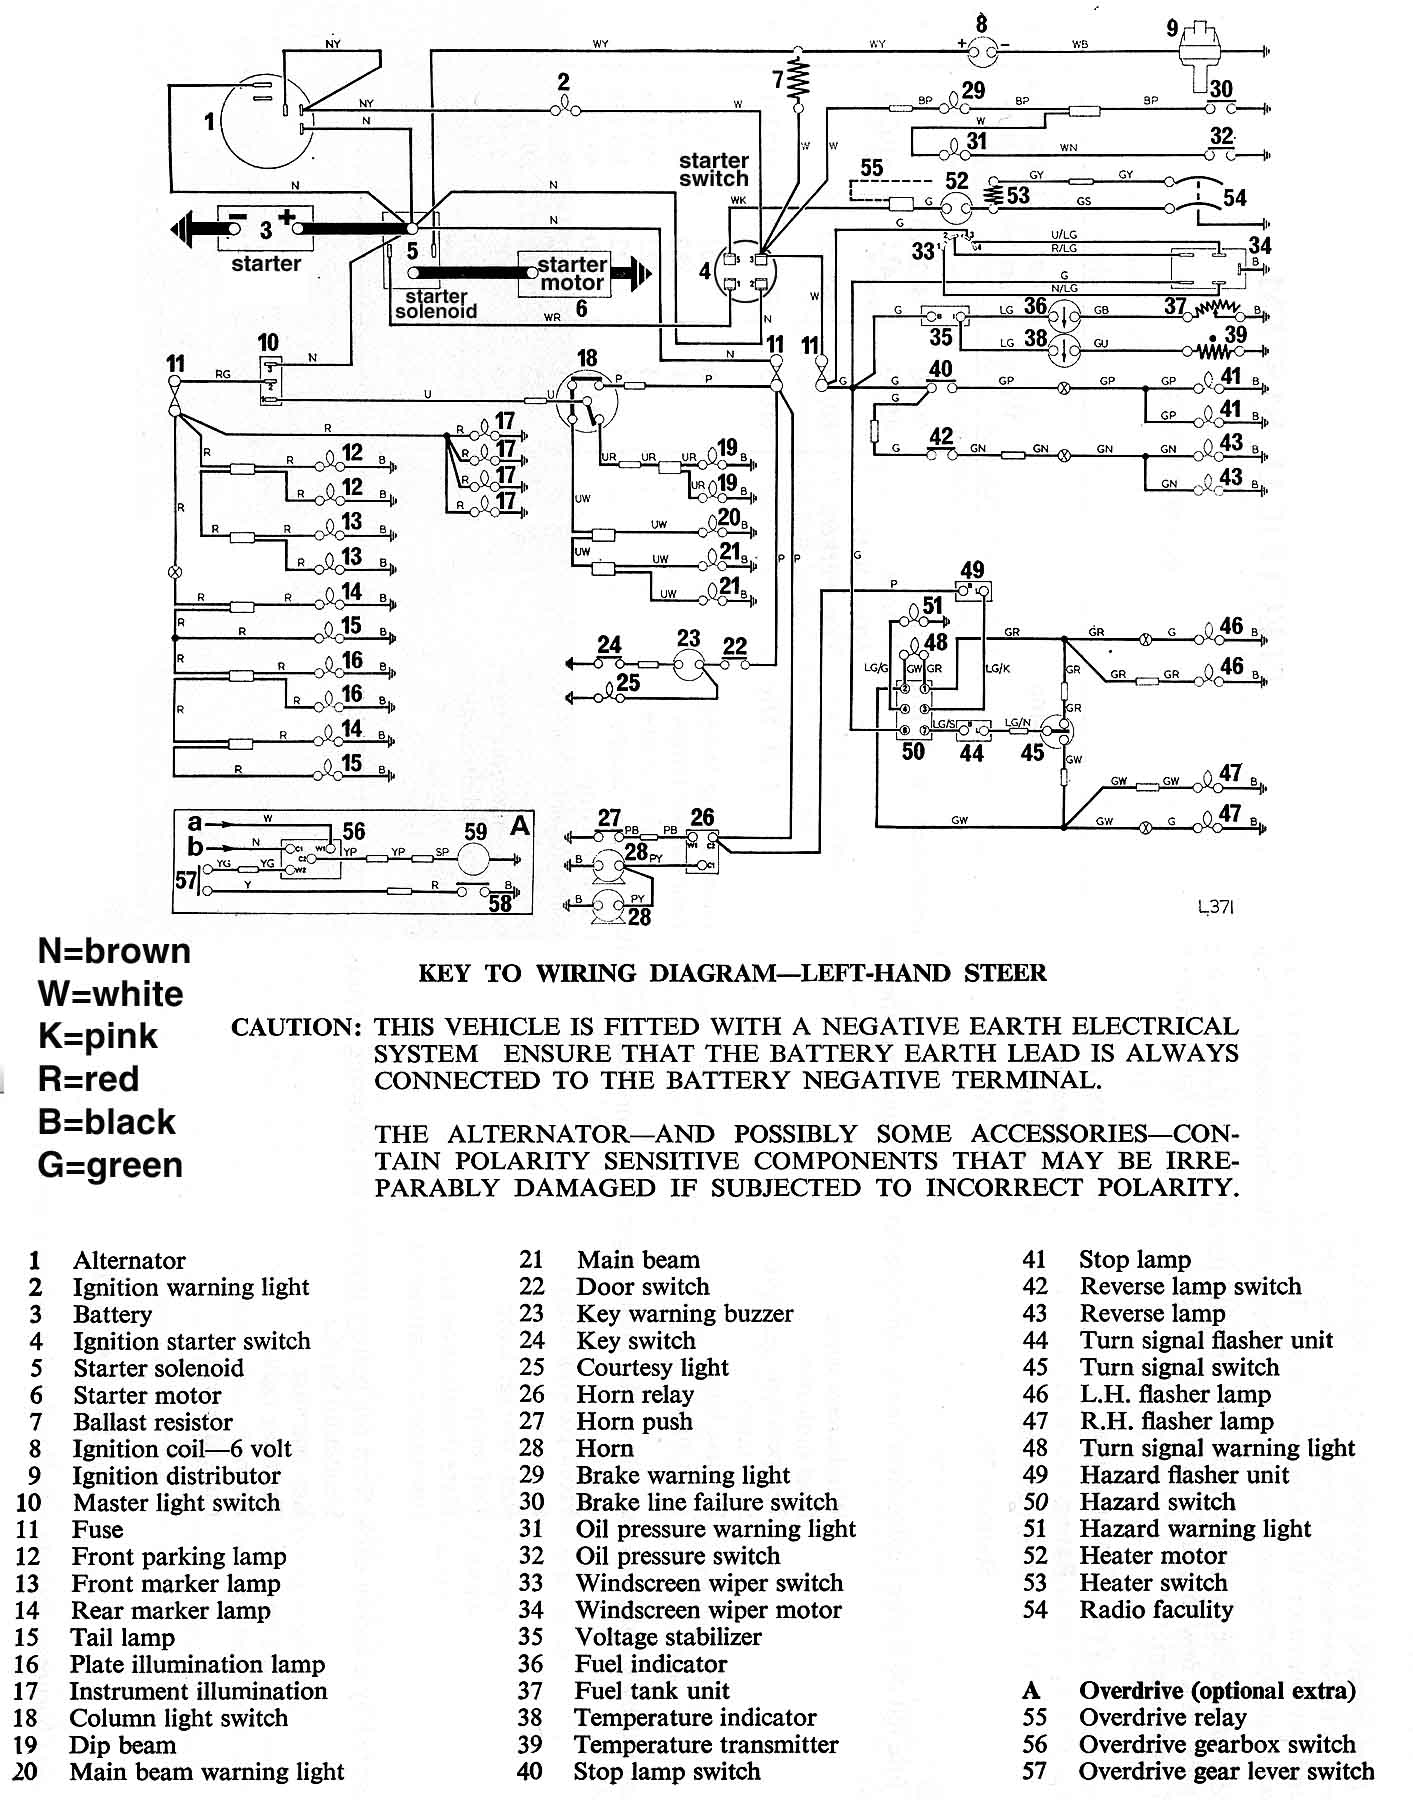 Color Wiring Diagram For 1977 Triumph Spitfire Free Vacuum Solenoid Schematics And Diagrams Gt6 Herald Rh Triumphspitfire Com 1965